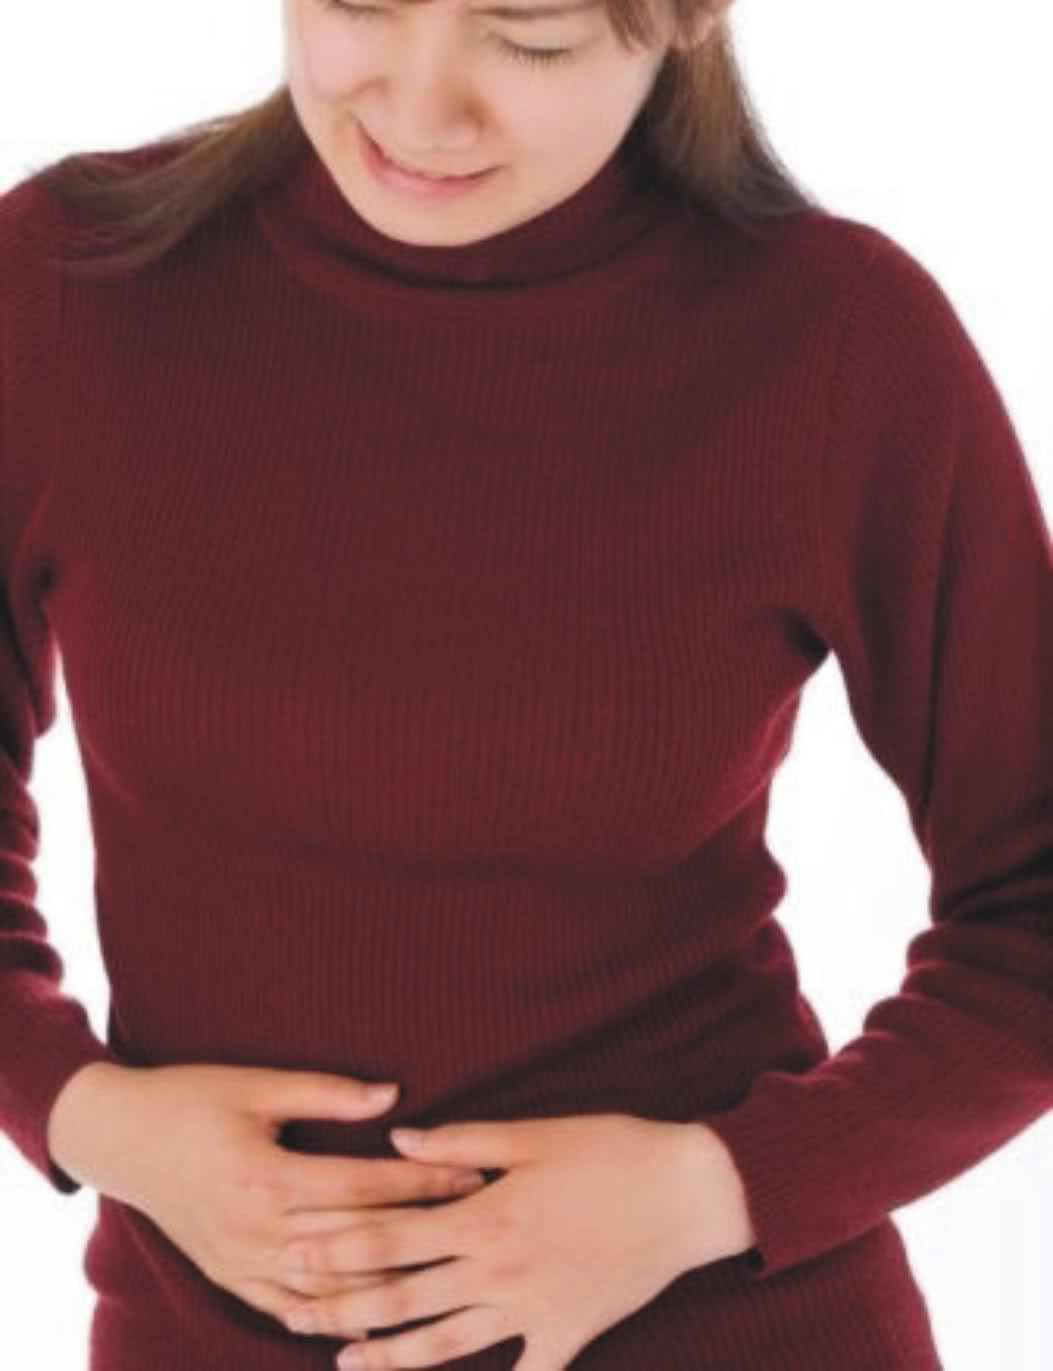 Woman with stomach pain from Celiac Disease